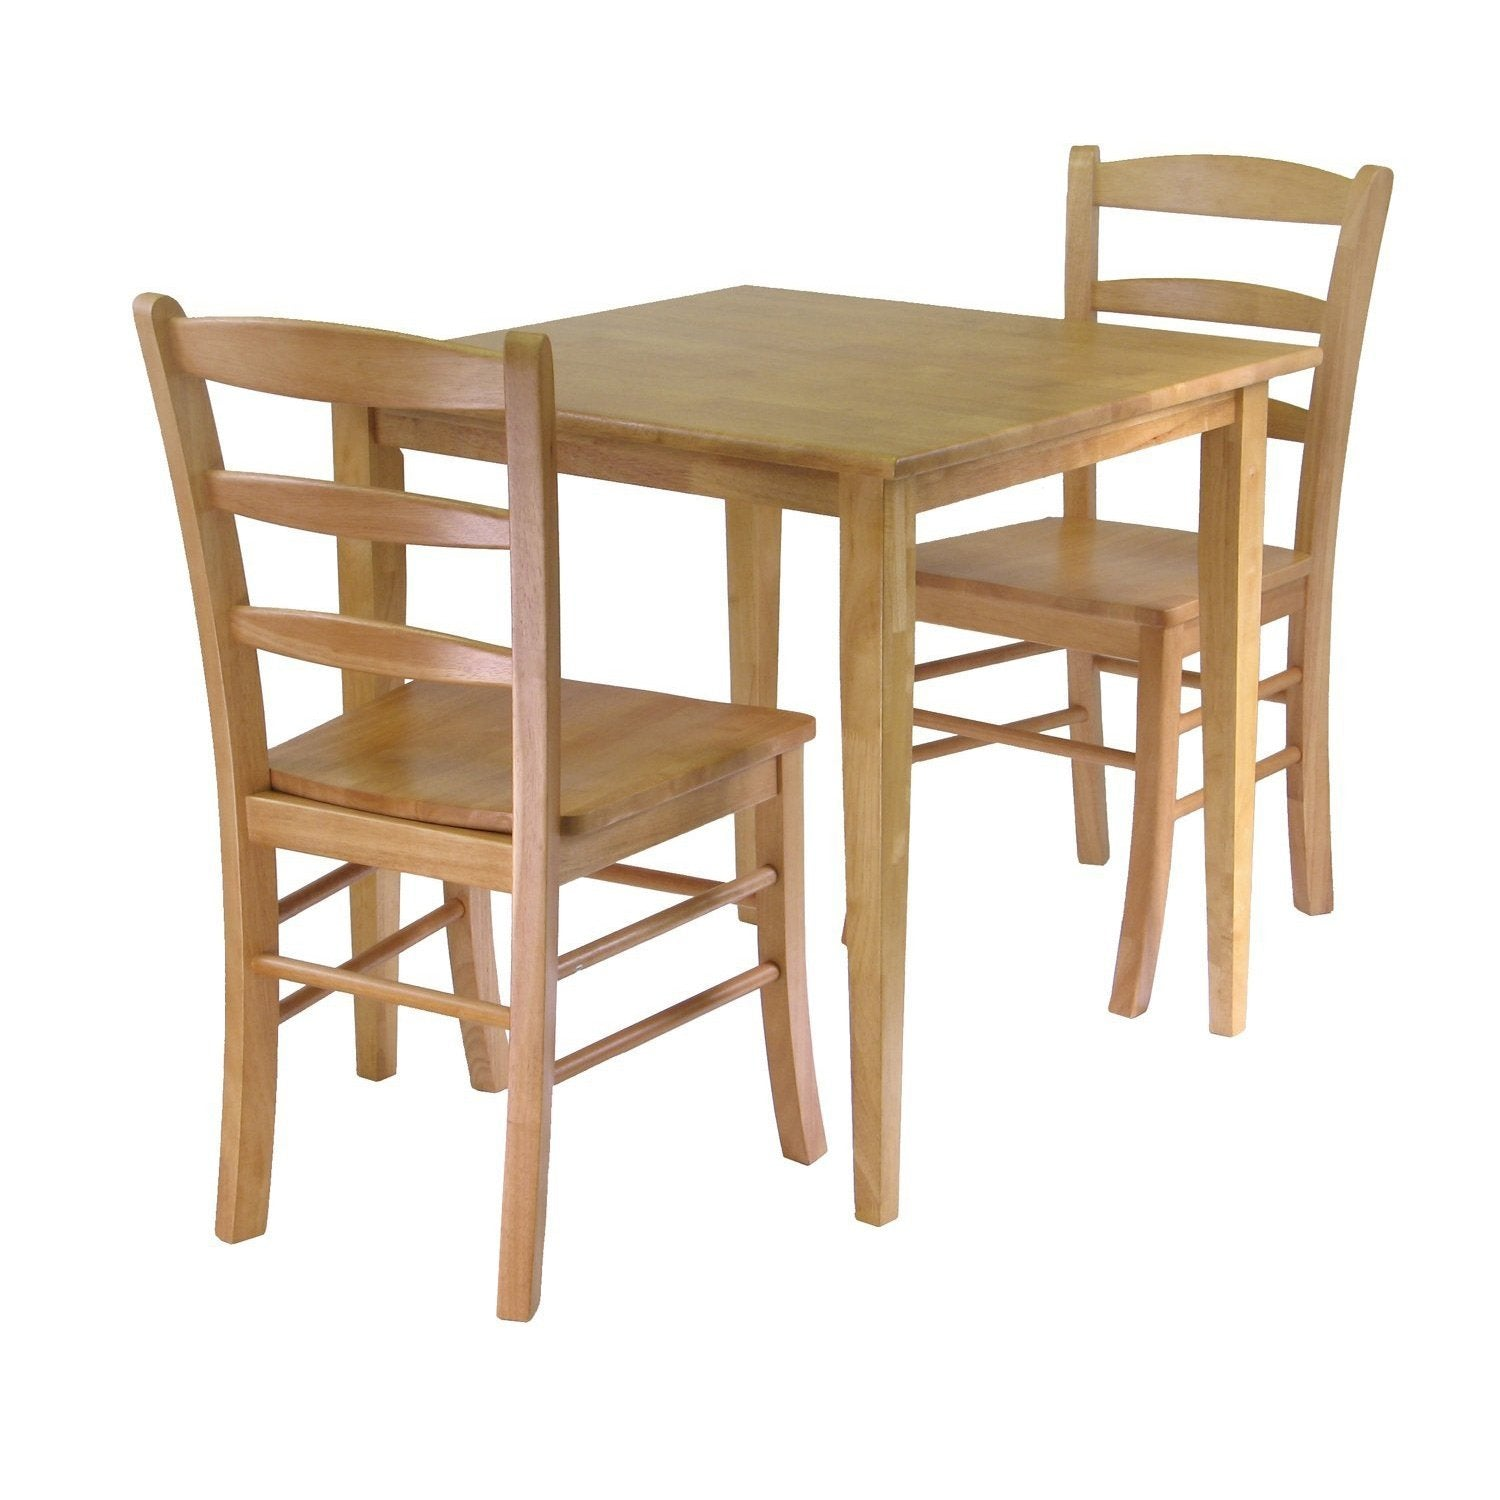 3 Piece Wood Dining Set in Light Oak Finish